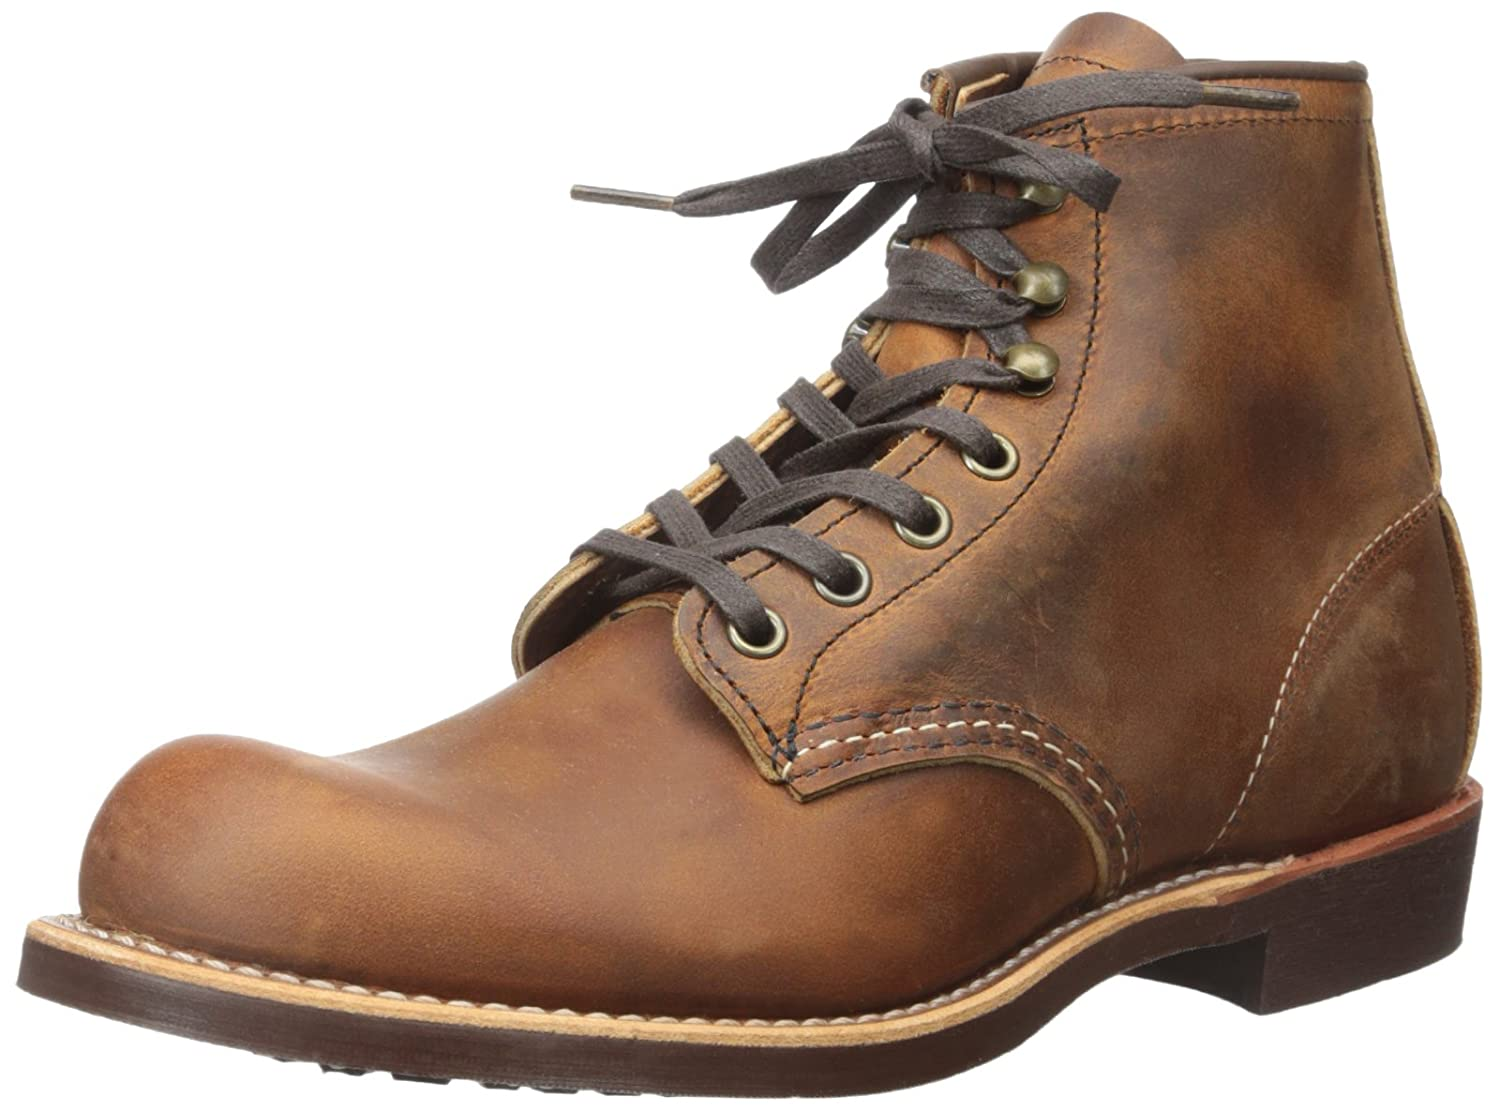 Red Wing Heritage メンズ Red Wing Heritage Copper Rough and Tough Leather 9.5 D(M) US 9.5 D(M) USCopper Rough and Tough Leather B018TL50Z6